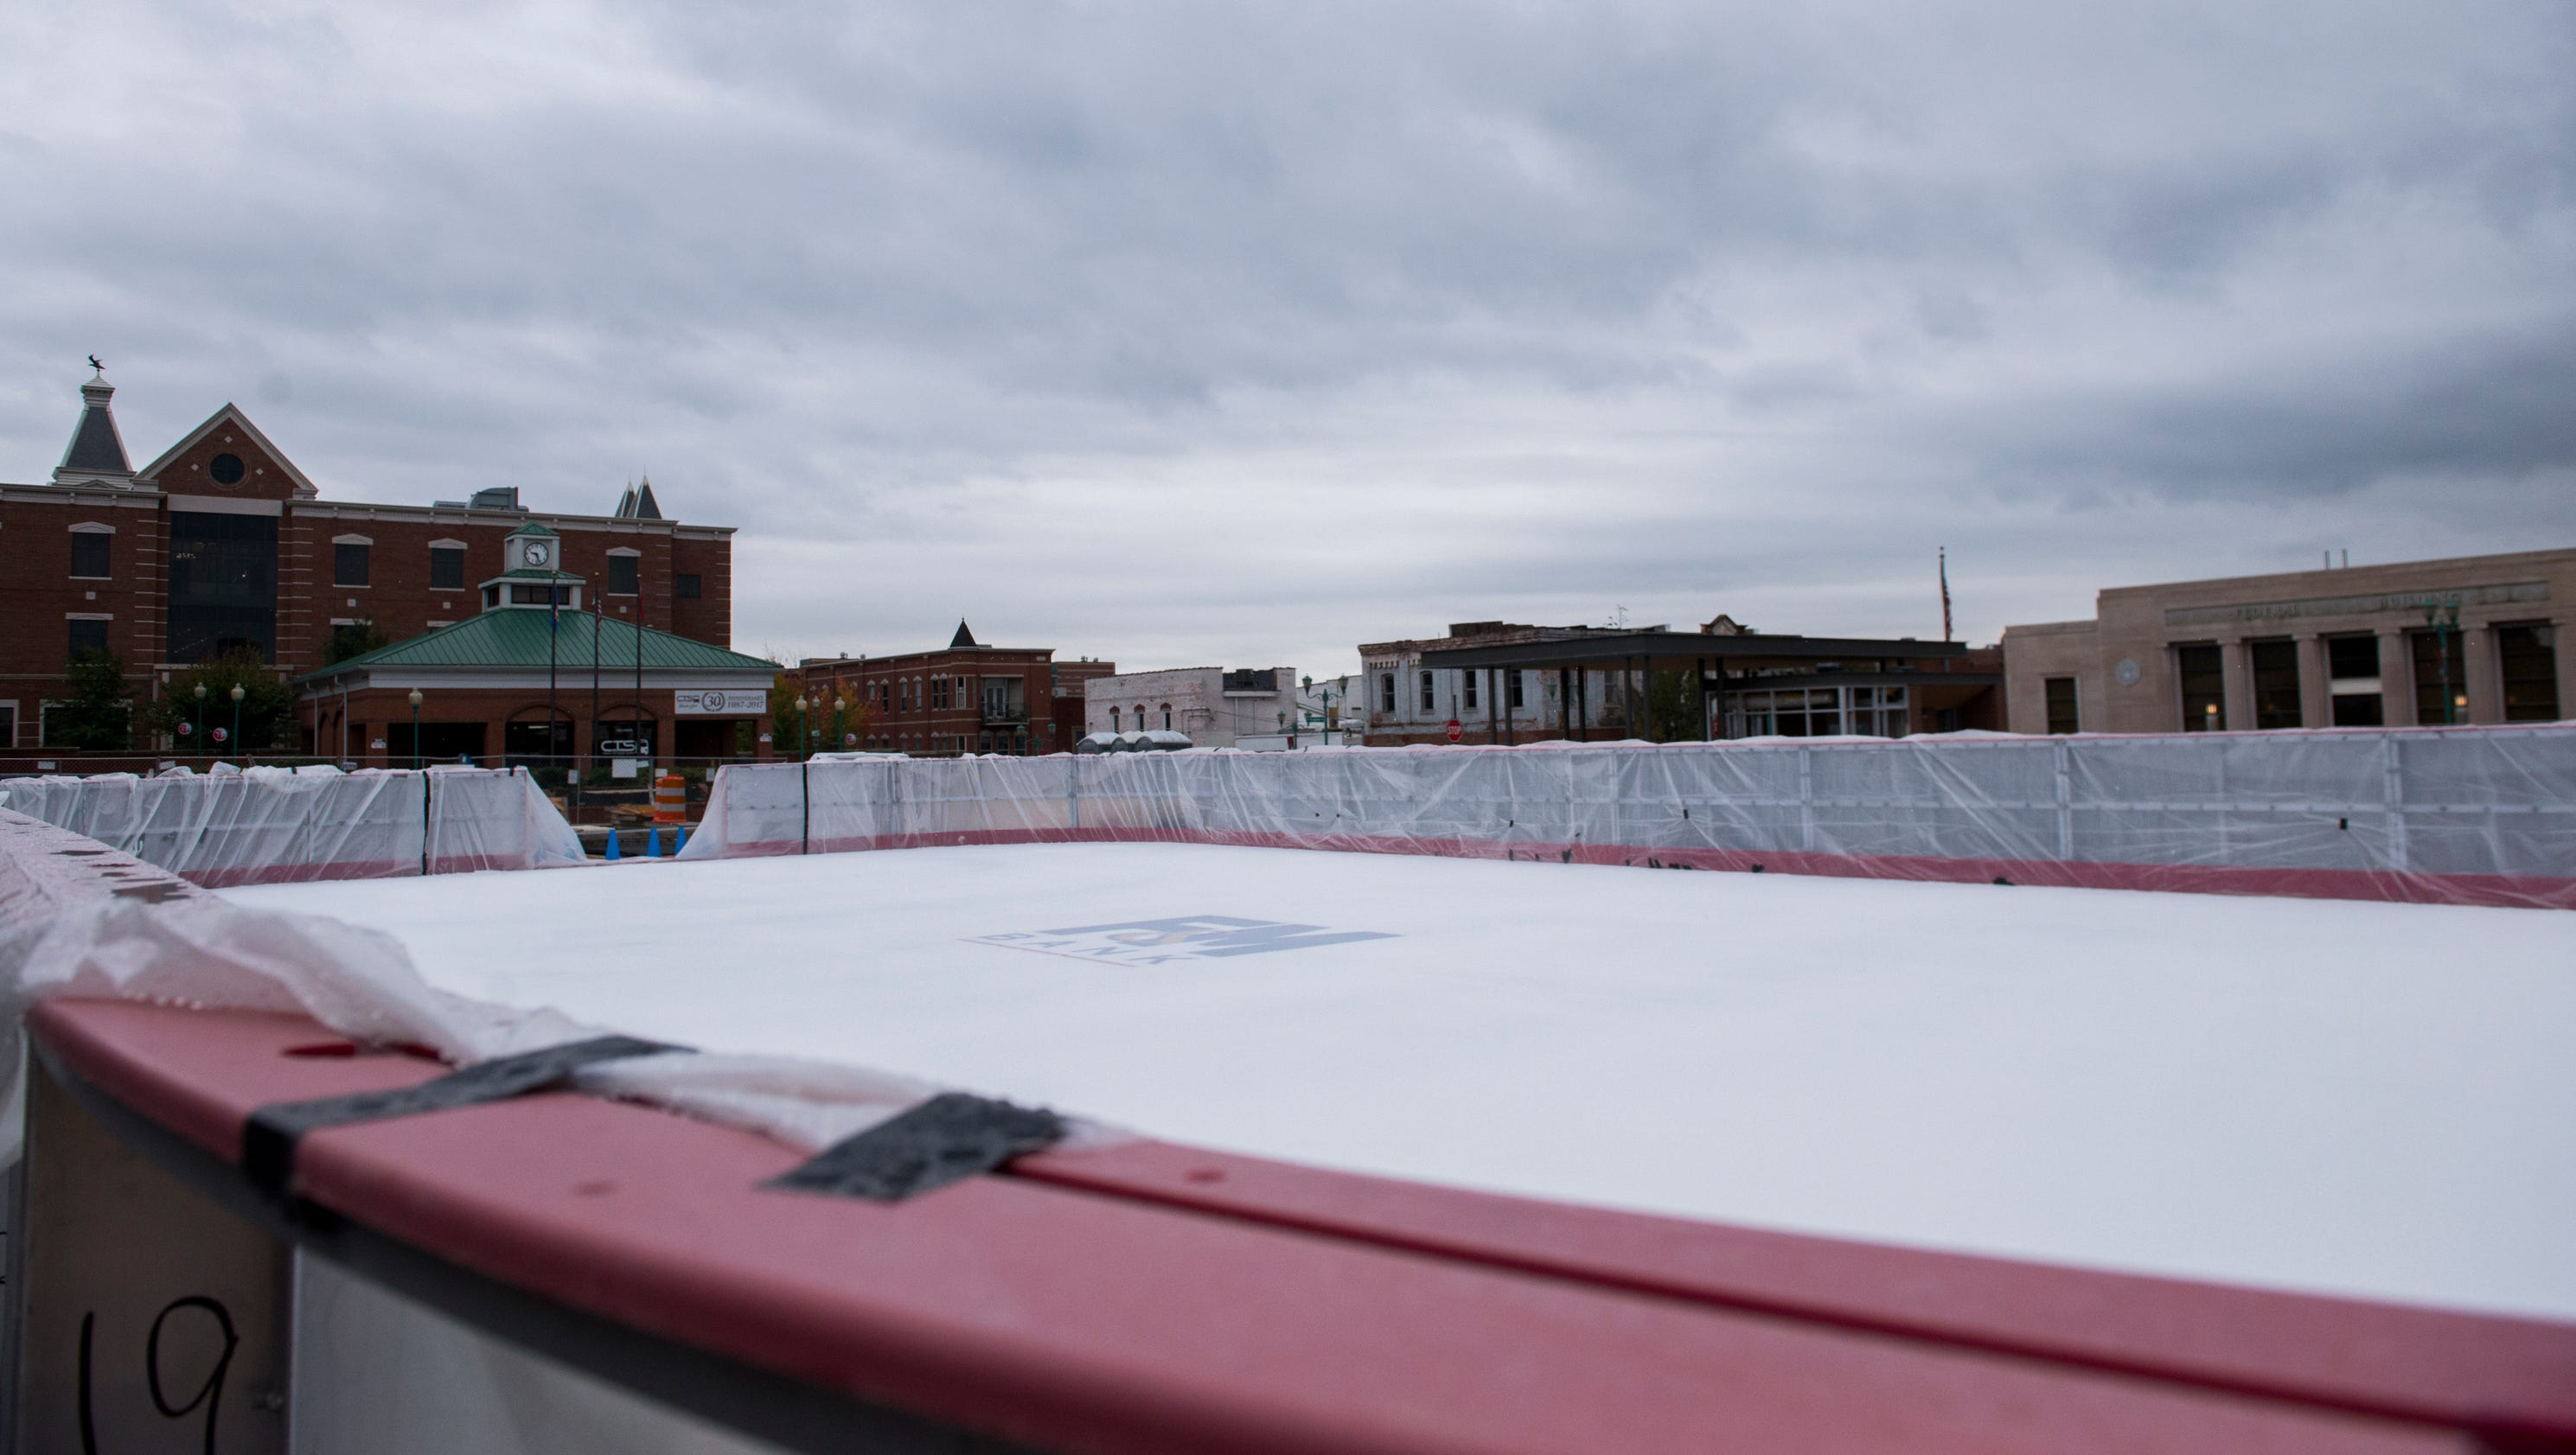 ice skating rink permit in the works as opening date nears